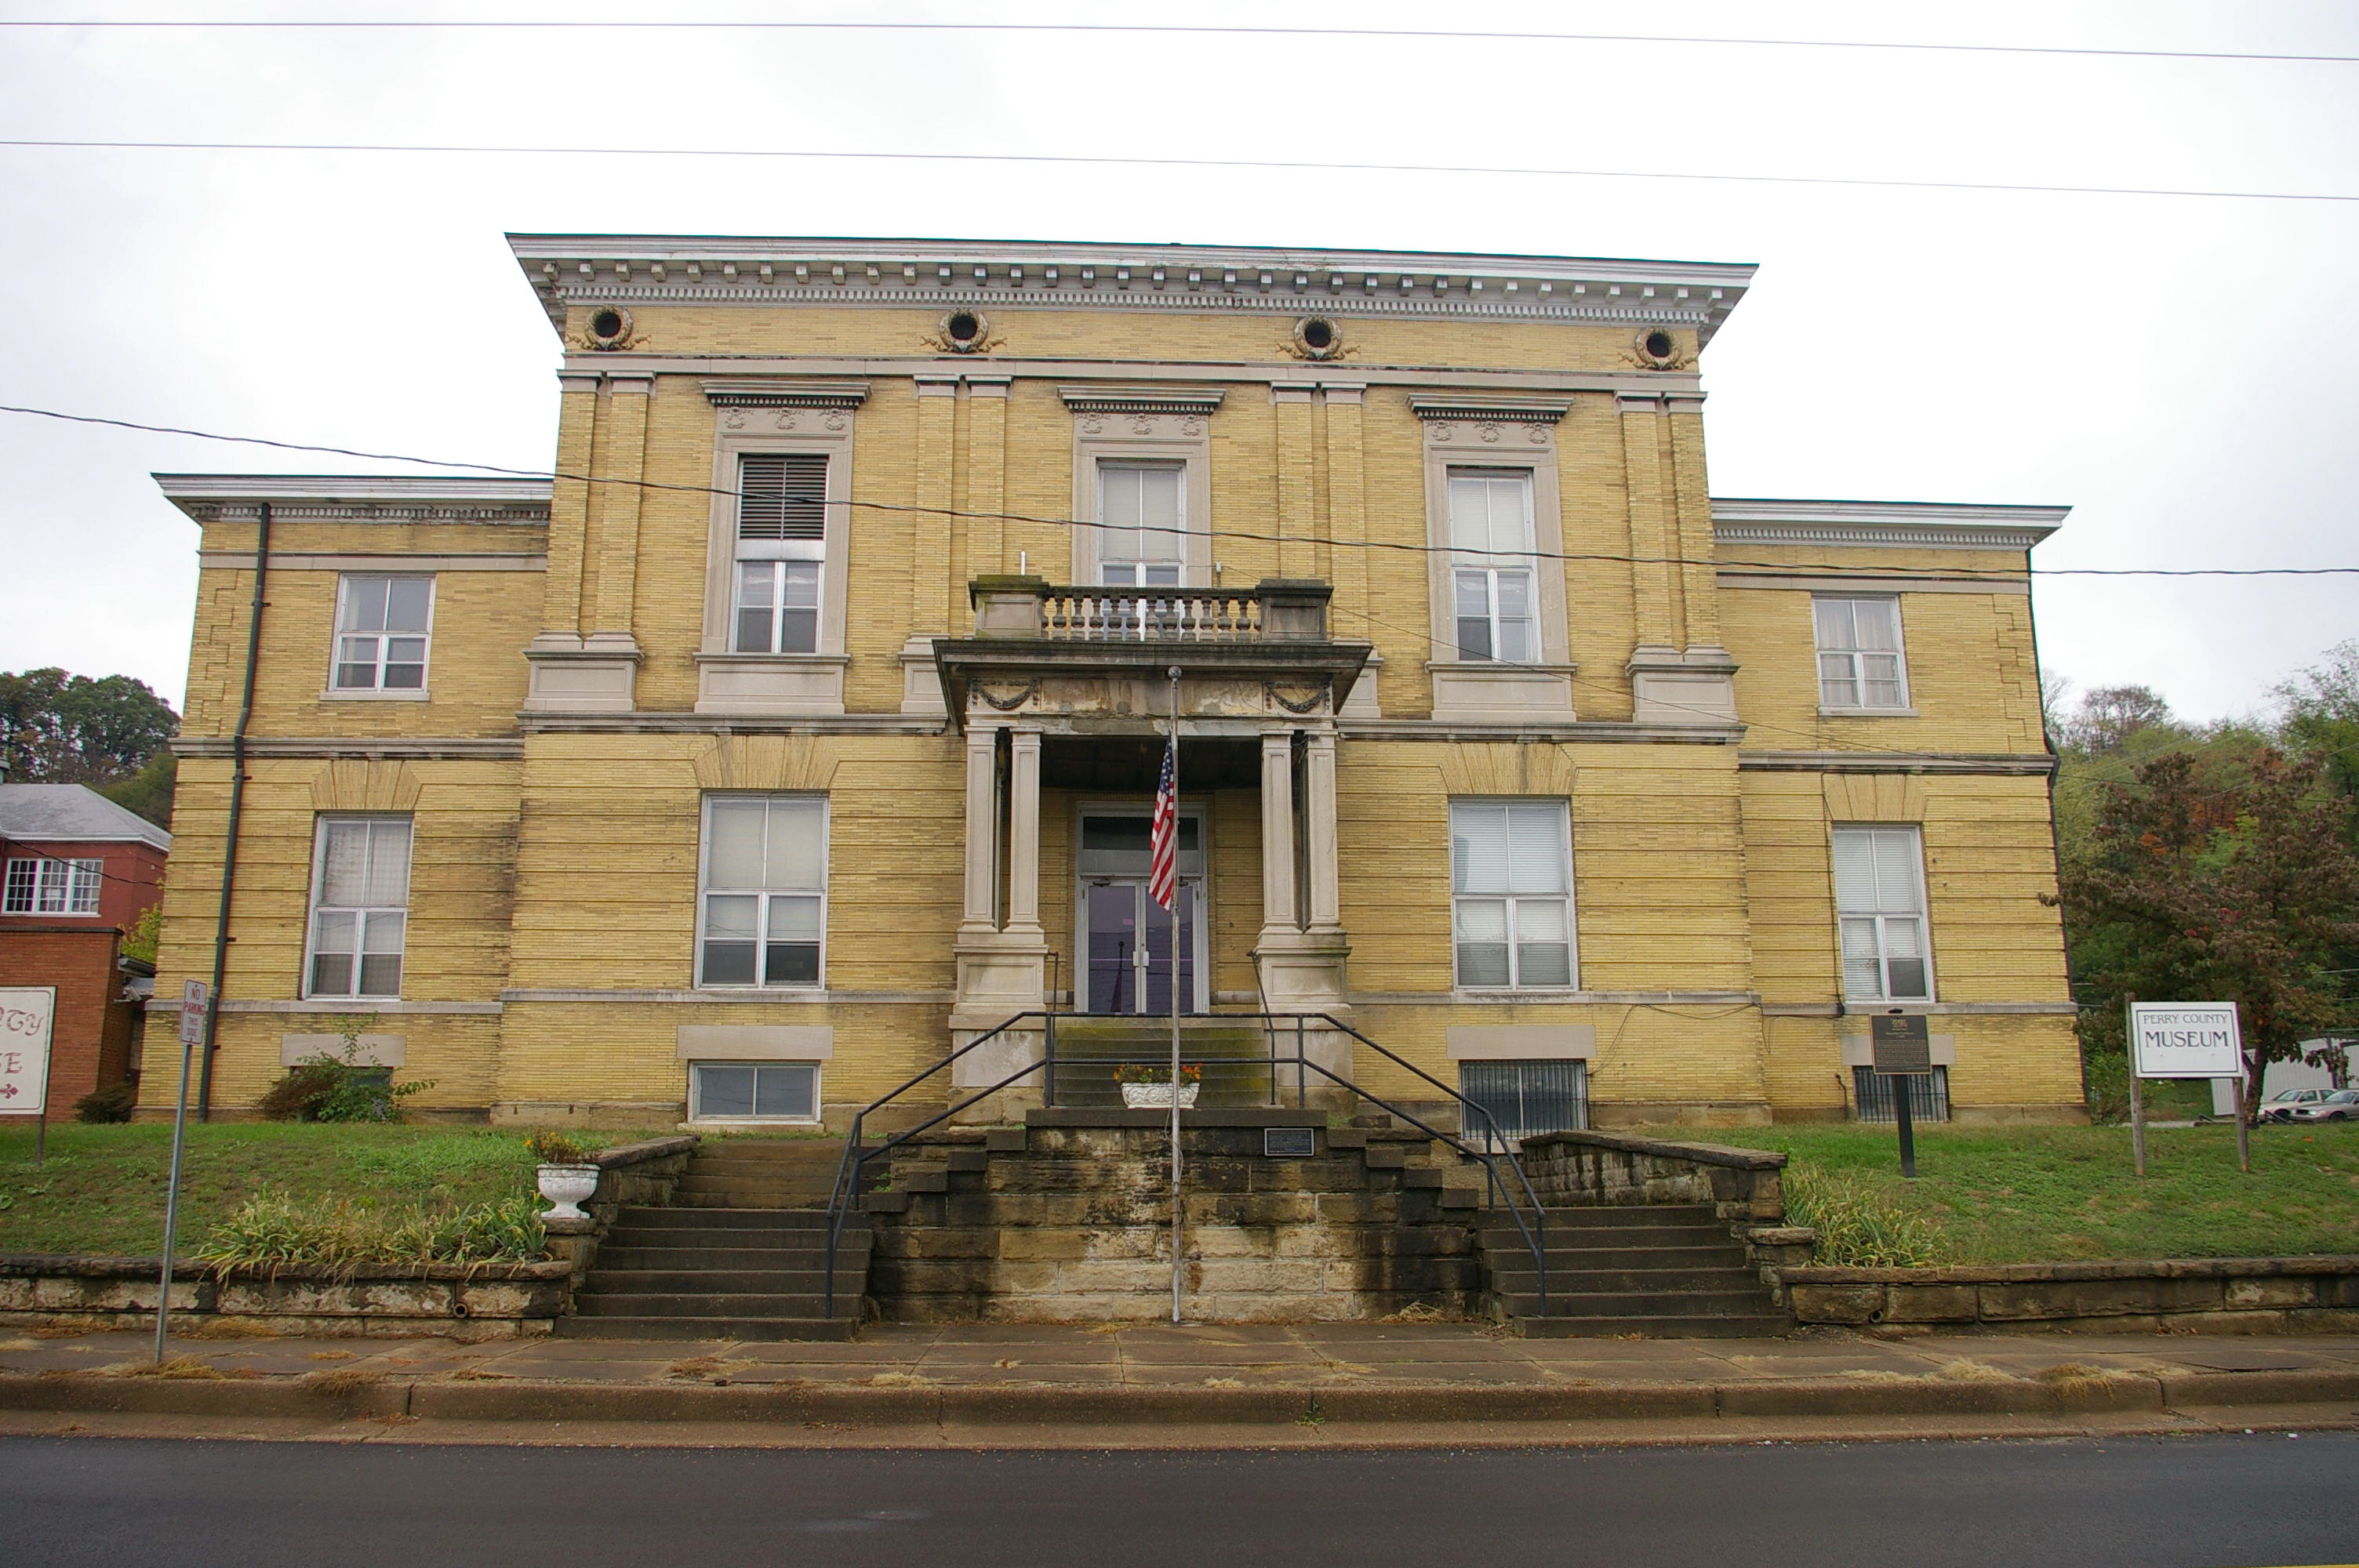 Indiana perry county cannelton - Old County Courthouse Cannelton 0532k07